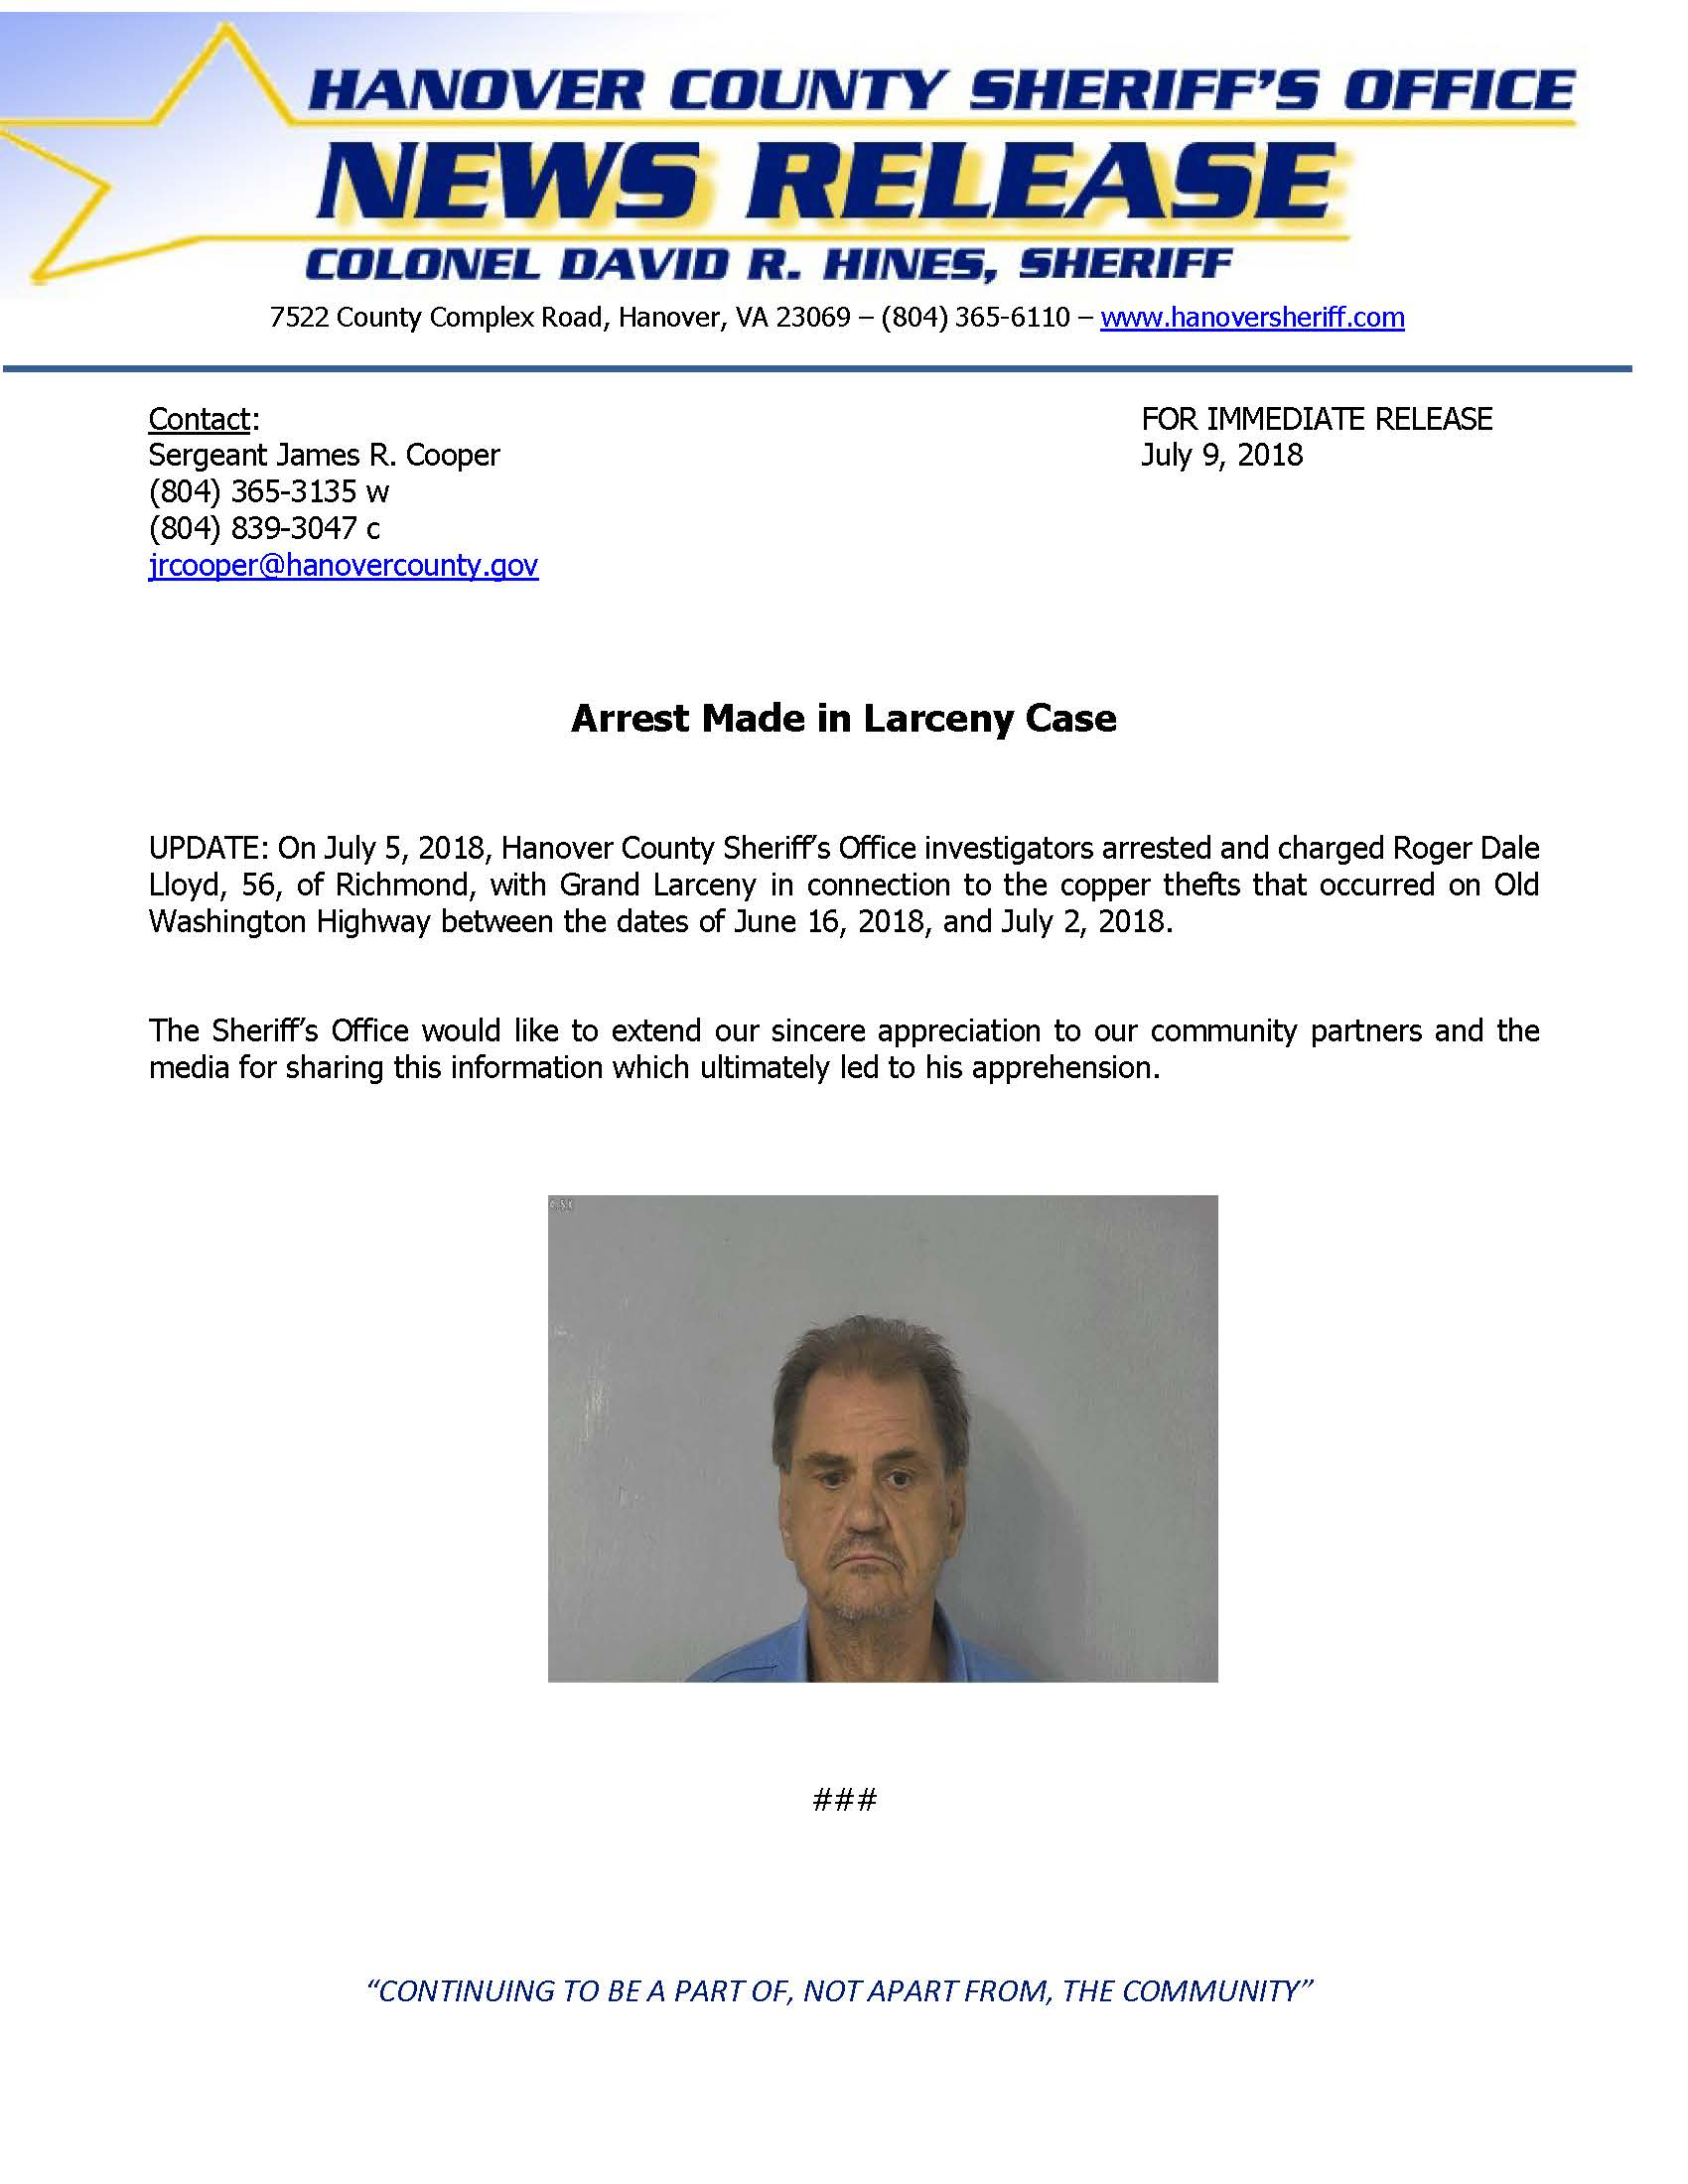 HCSO - Investigators Seek to Identify Larceny Suspect- ARREST MADE- July 3, 2018_Page_1